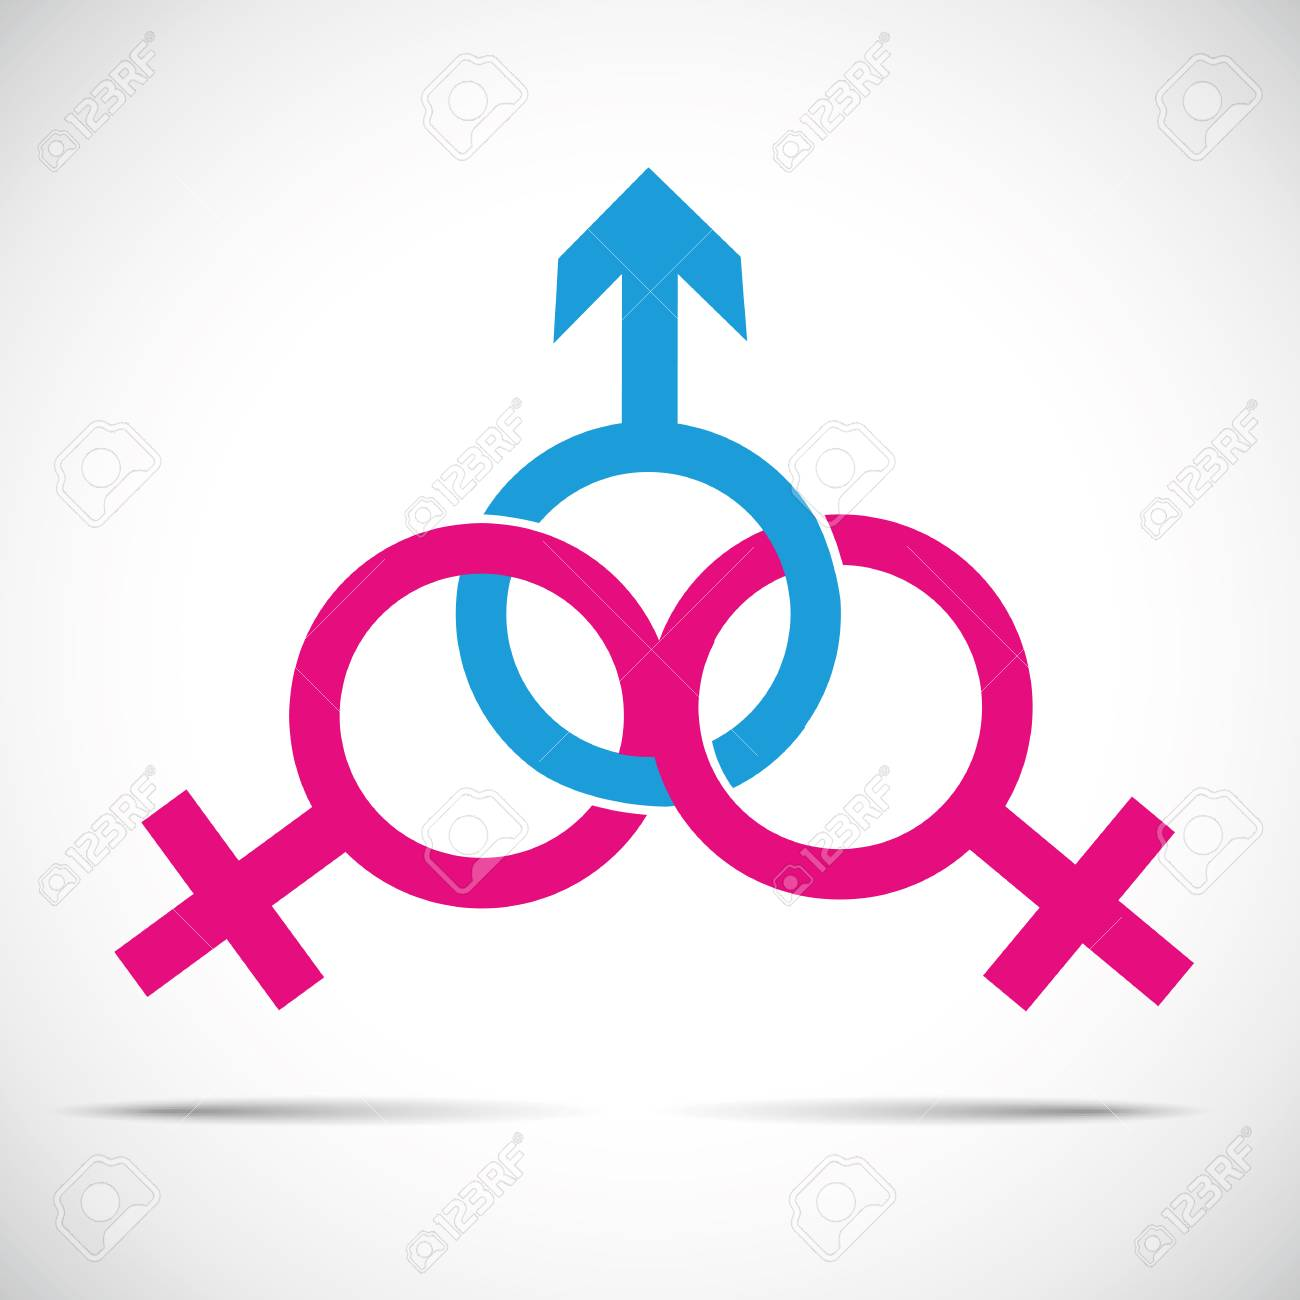 cheat partner relationship and fraud one male and two female symbol vector illustration EPS10 - 126123475